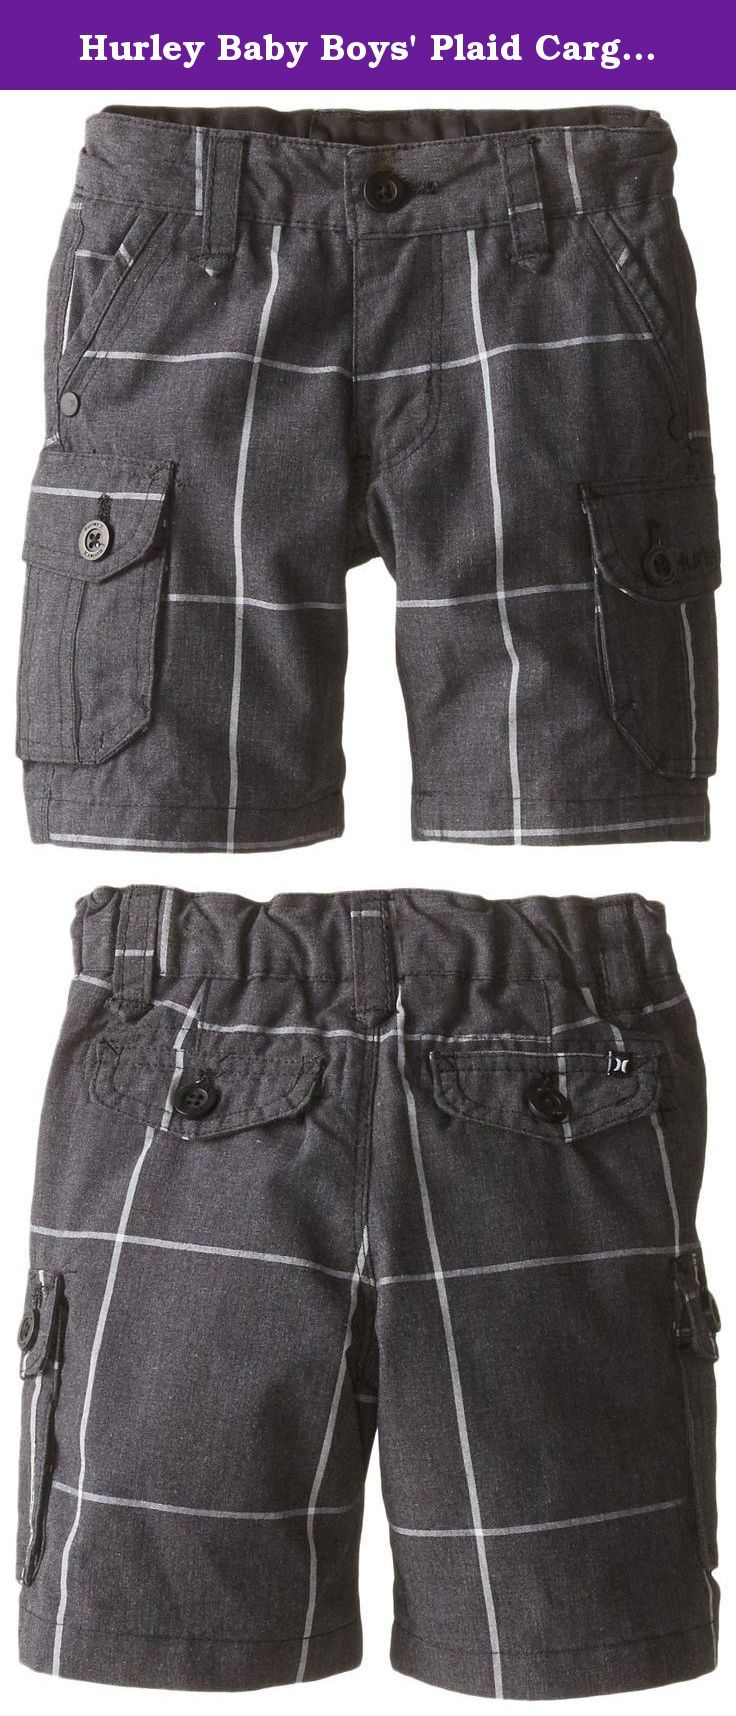 Hurley Baby Boys' Plaid Cargo Short, Black, 24 Months. Effortlessly cool, the Hurley one and only plaid cargo short has a look he'll love and the comfort he craves. This comfortable short features an adjustable waist for the perfect fit.